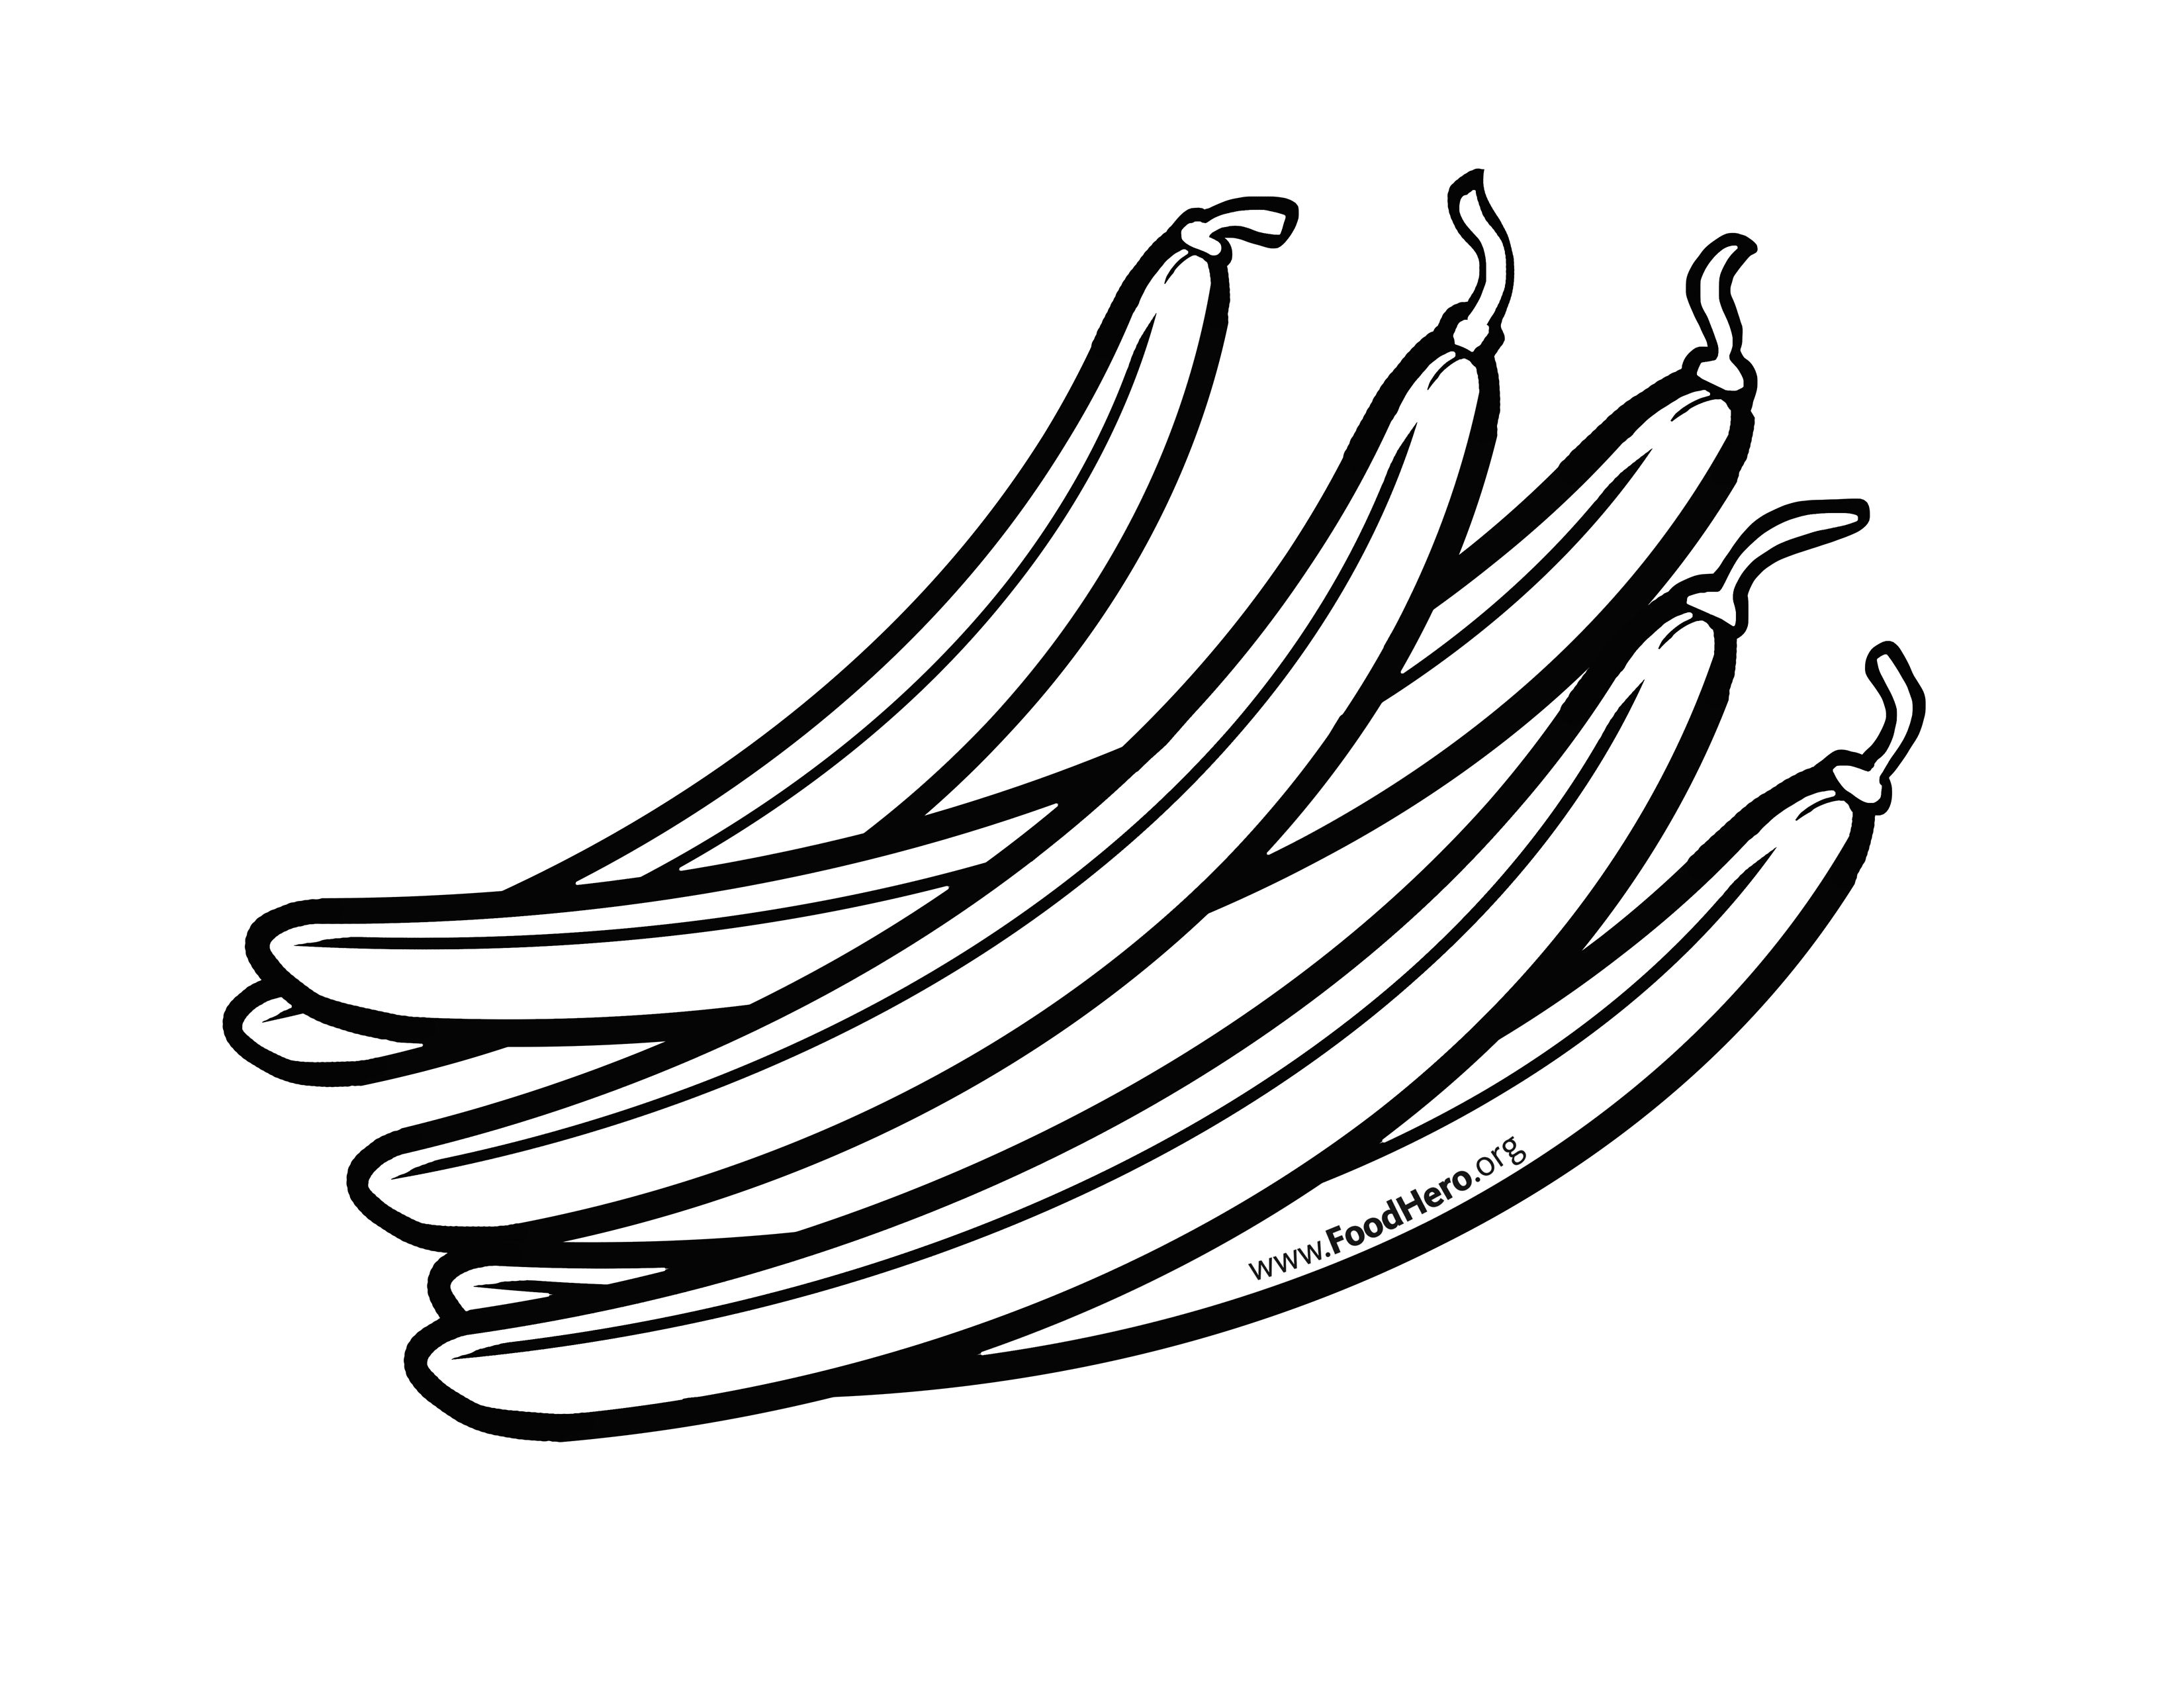 Black and white clipart of black beans image freeuse download String Beans Drawing | Free download best String Beans Drawing on ... image freeuse download